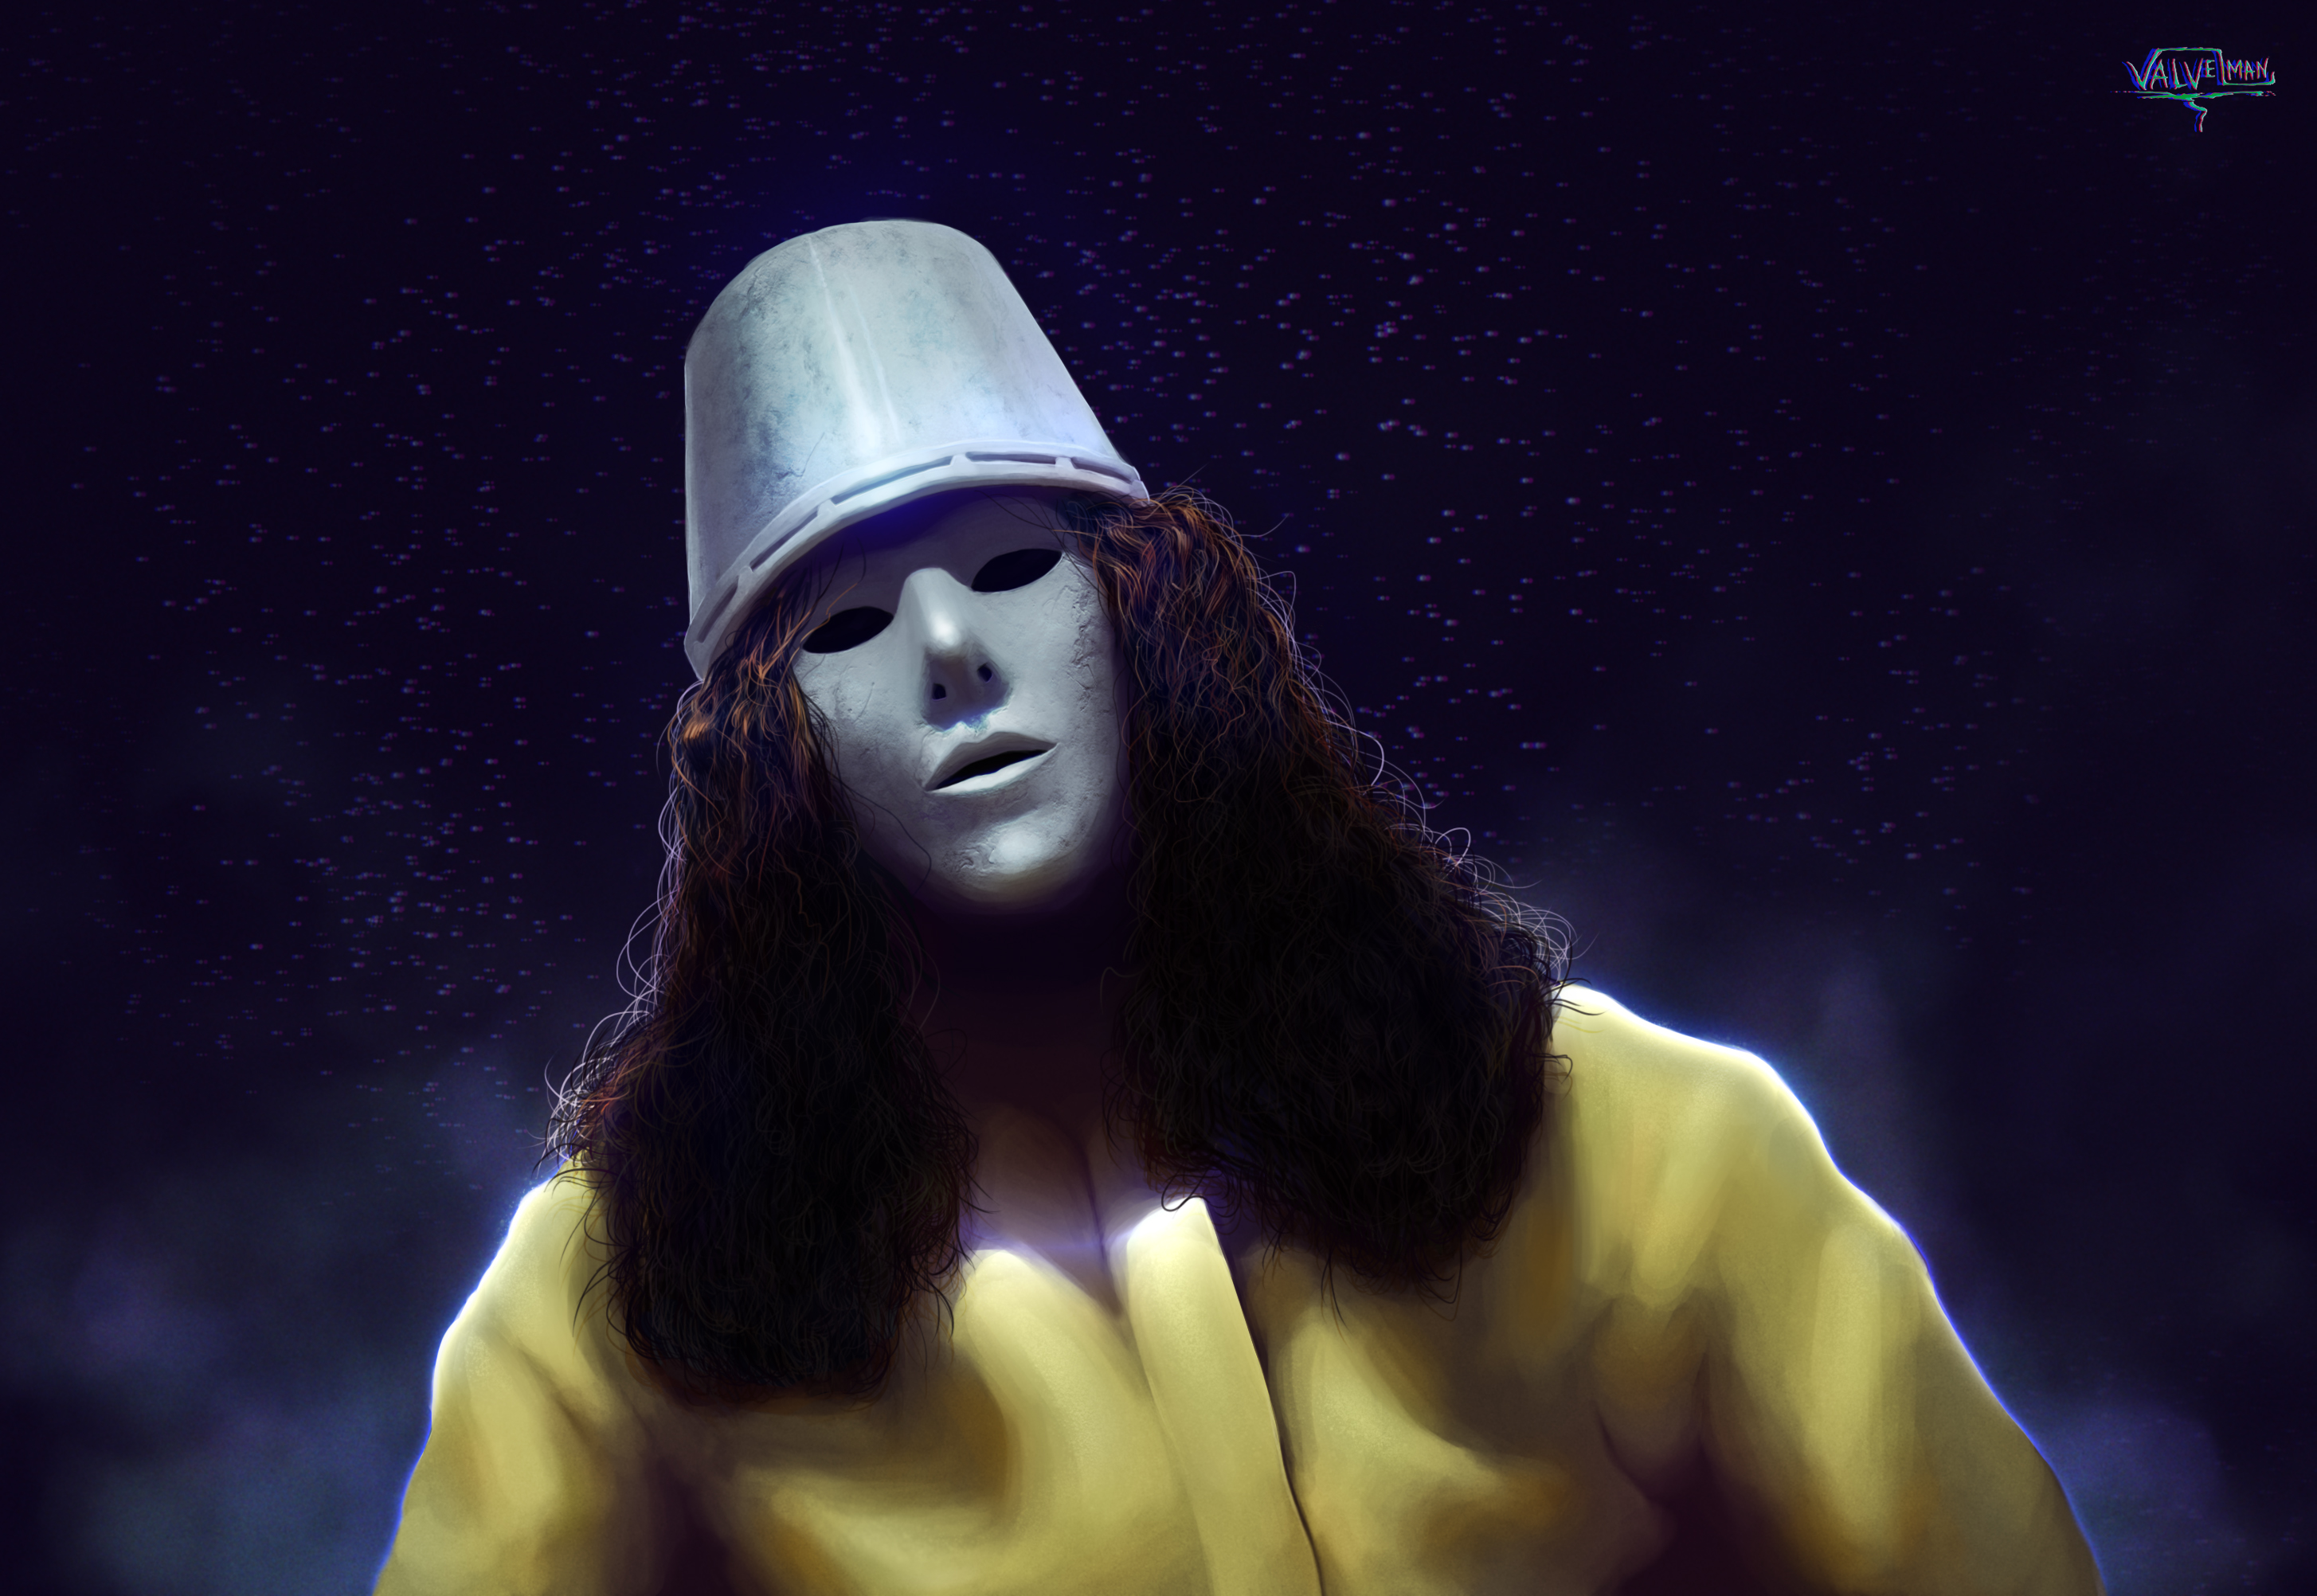 Buckethead by VALVe-man